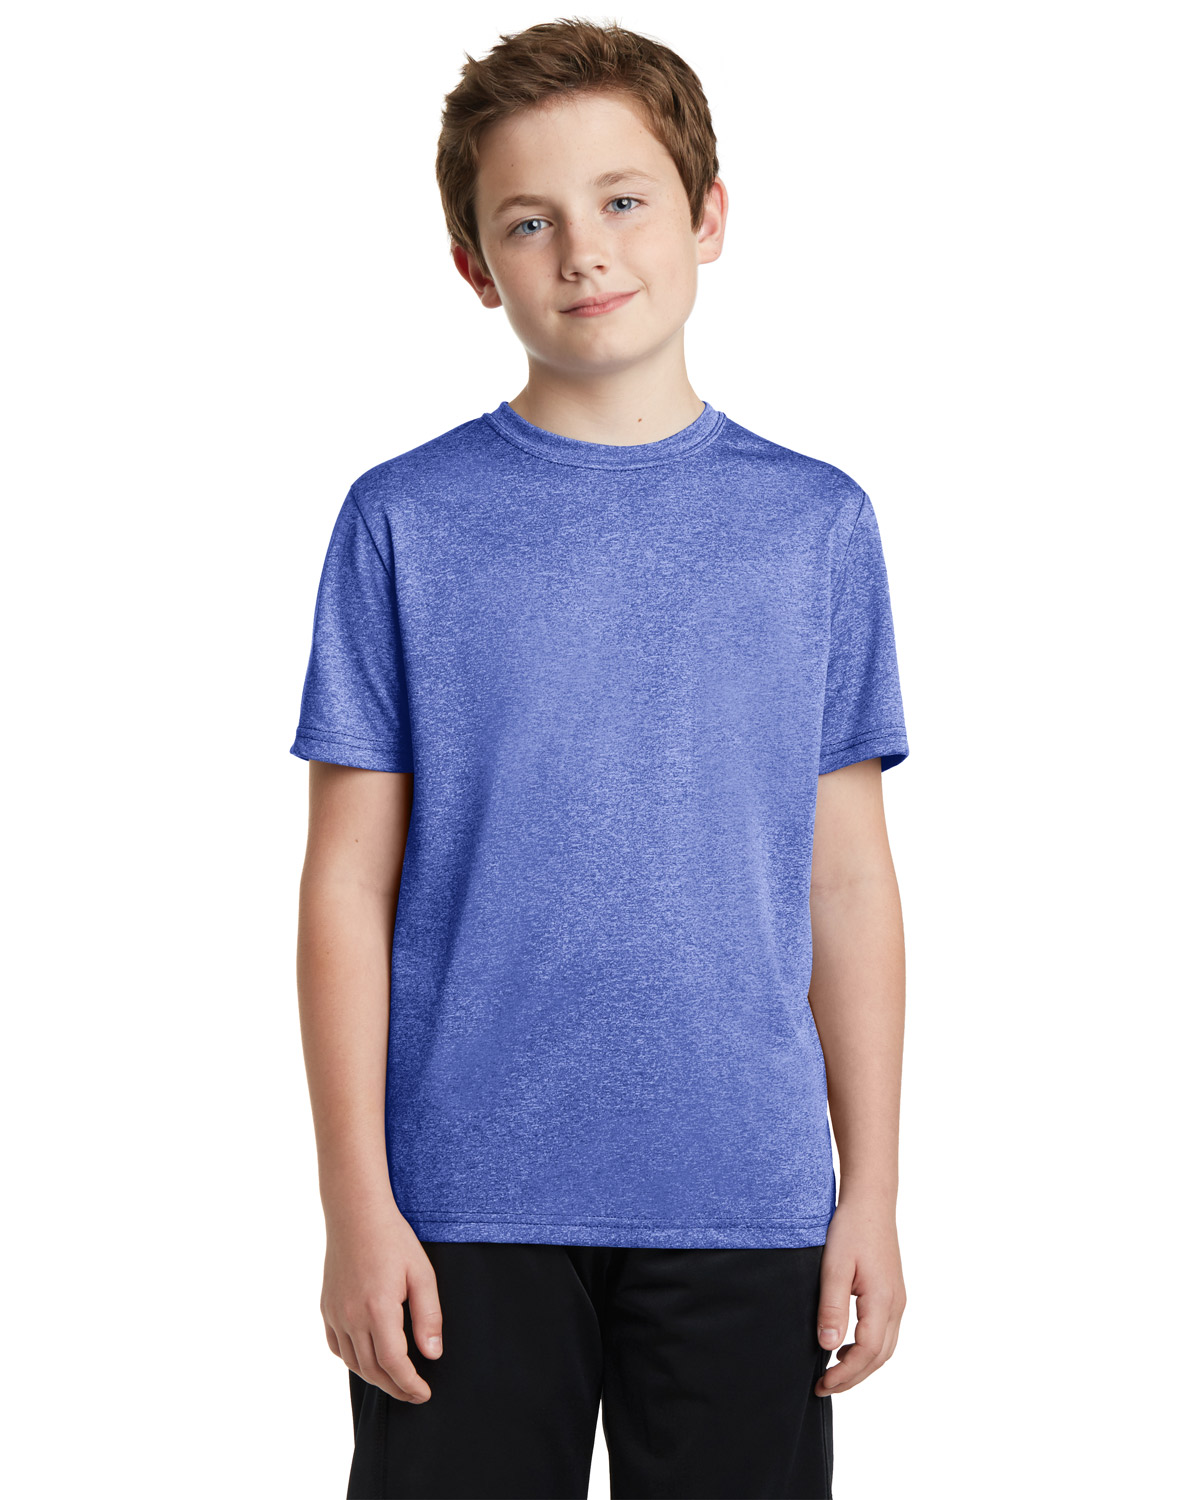 Sport-Tek YST360 Boys Heather Contender™ Tee at GotApparel